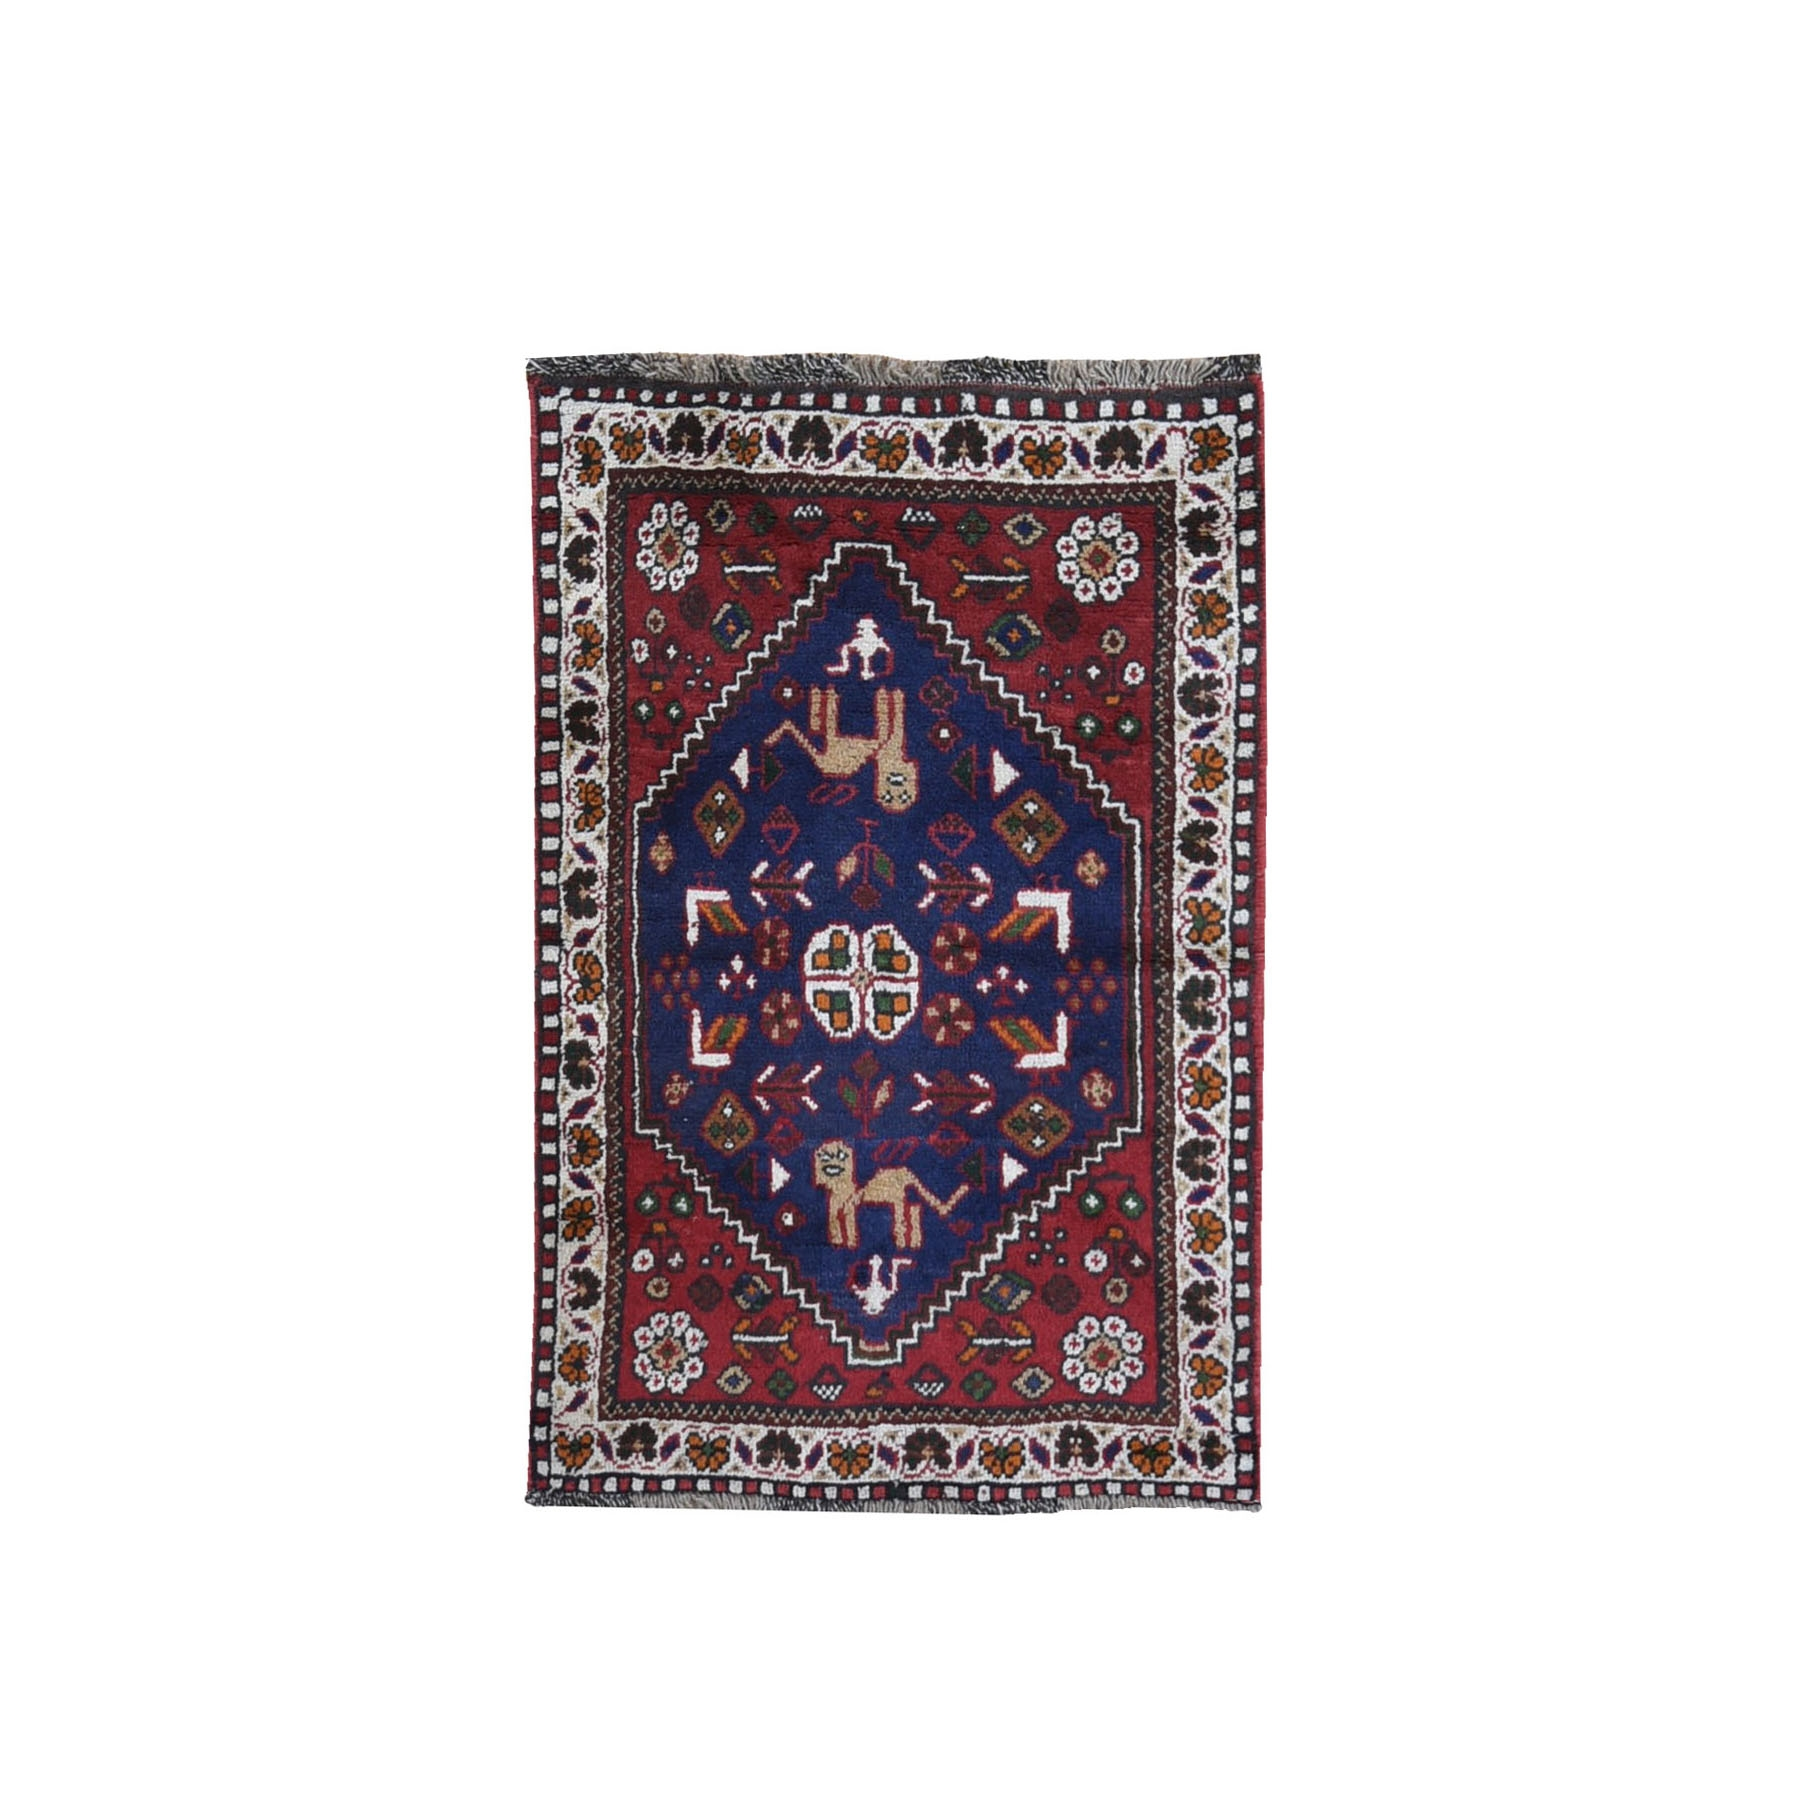 "2'4""x3'9"" New Persian Shiraz with Dog Figurines Hand Knotted Organic Wool Mat Oriental Rug"